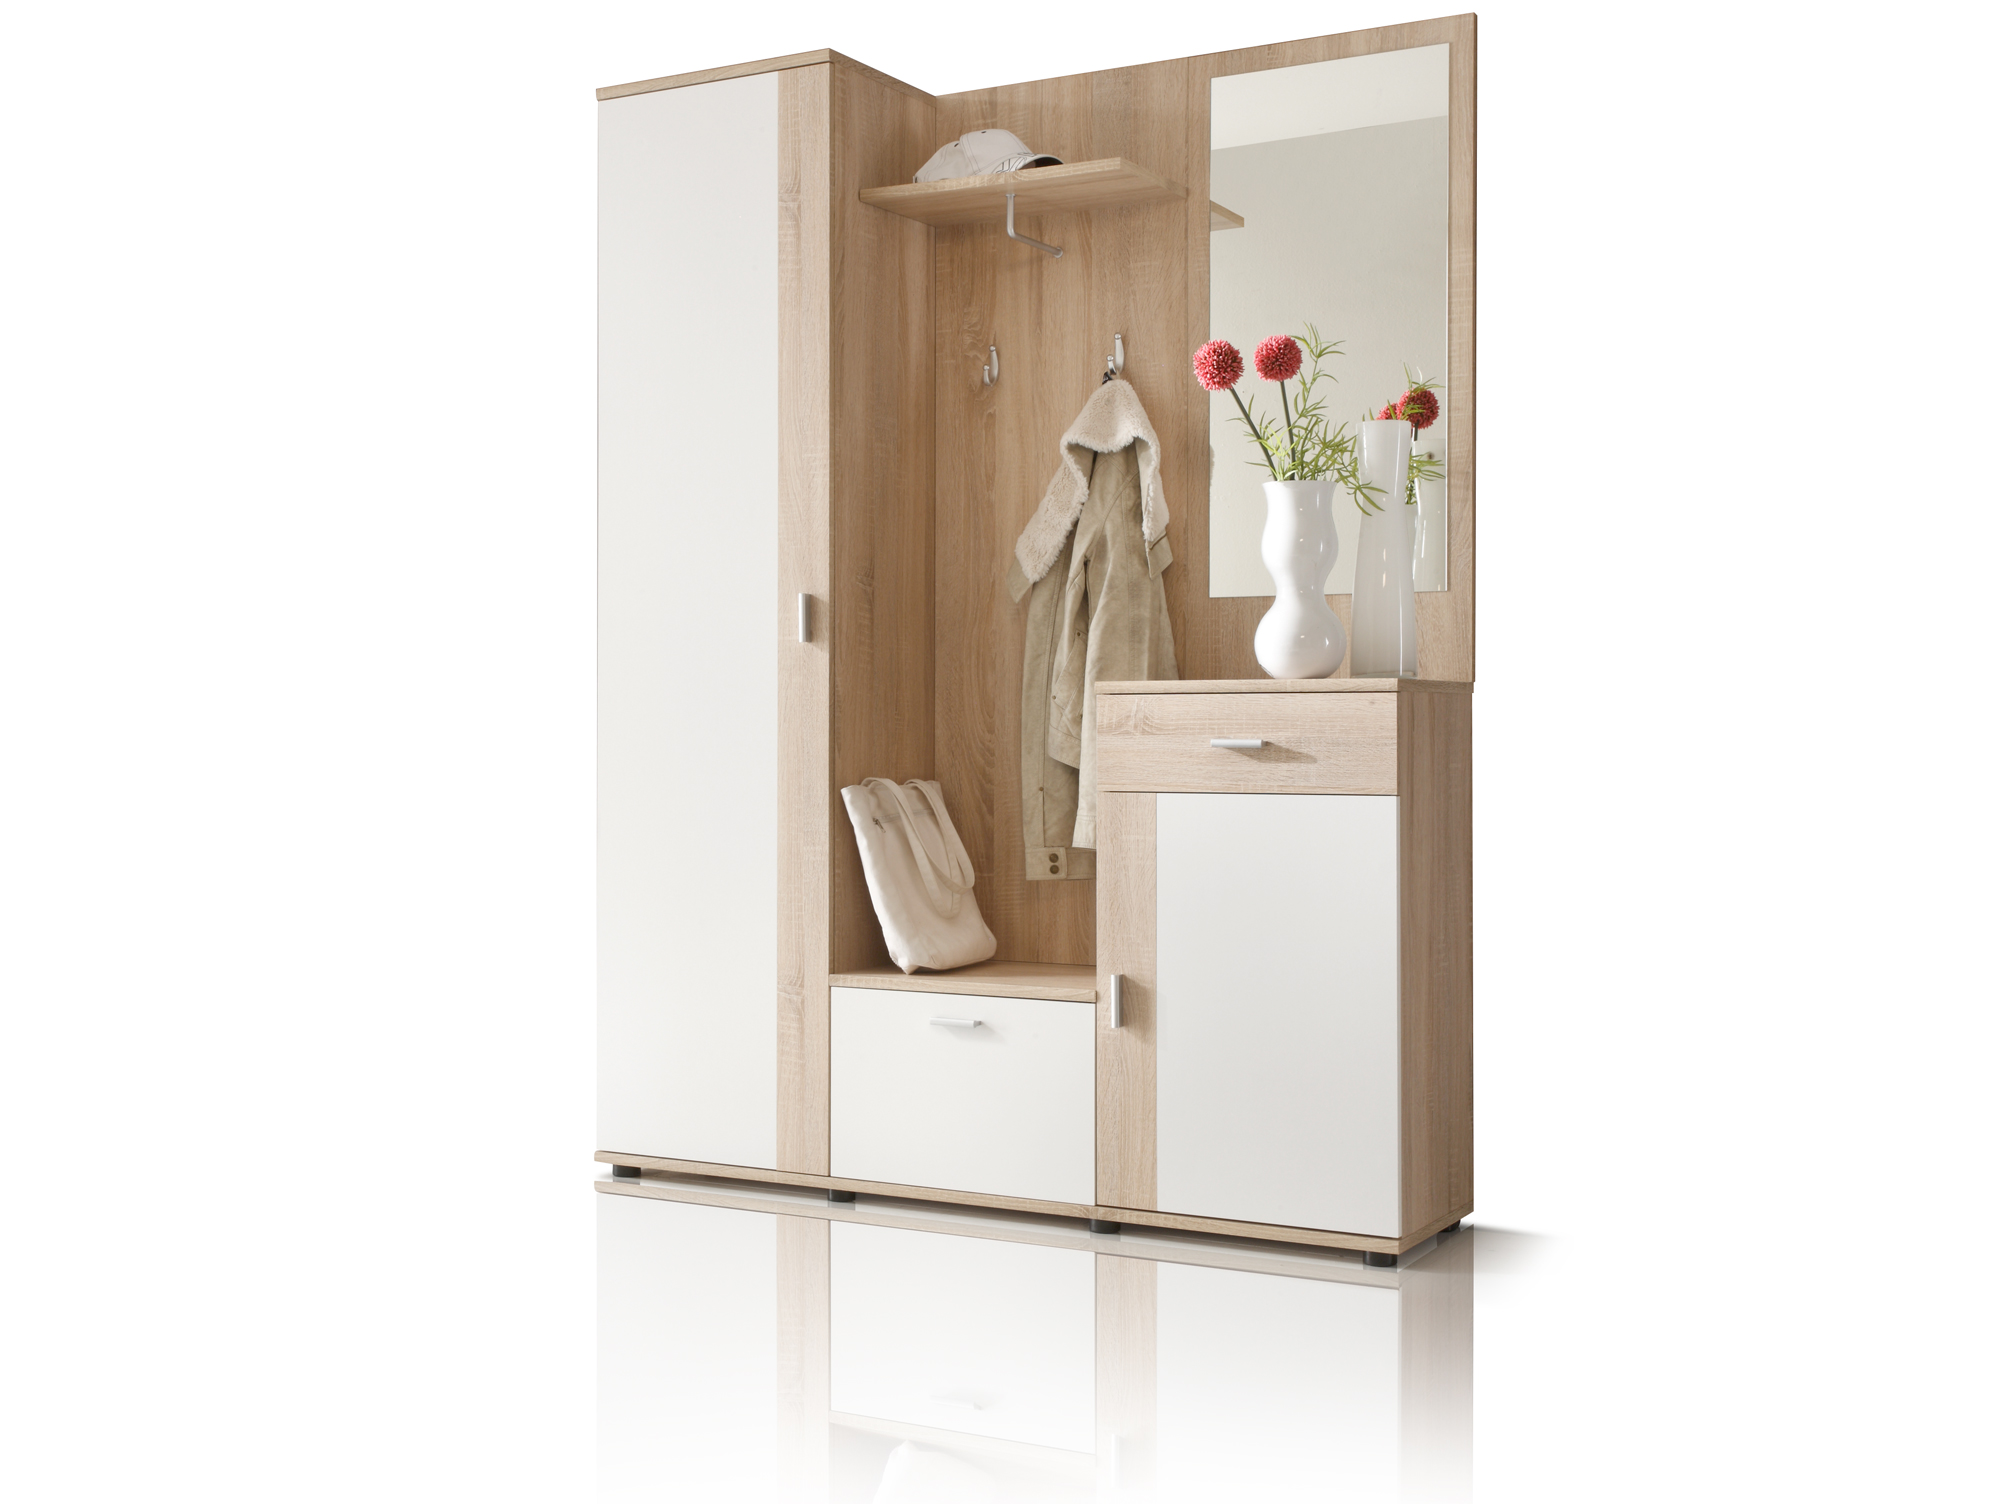 garderobe mit bank moderne garderobe hangend innenraum und m bel garderobe mit bank deutsche. Black Bedroom Furniture Sets. Home Design Ideas